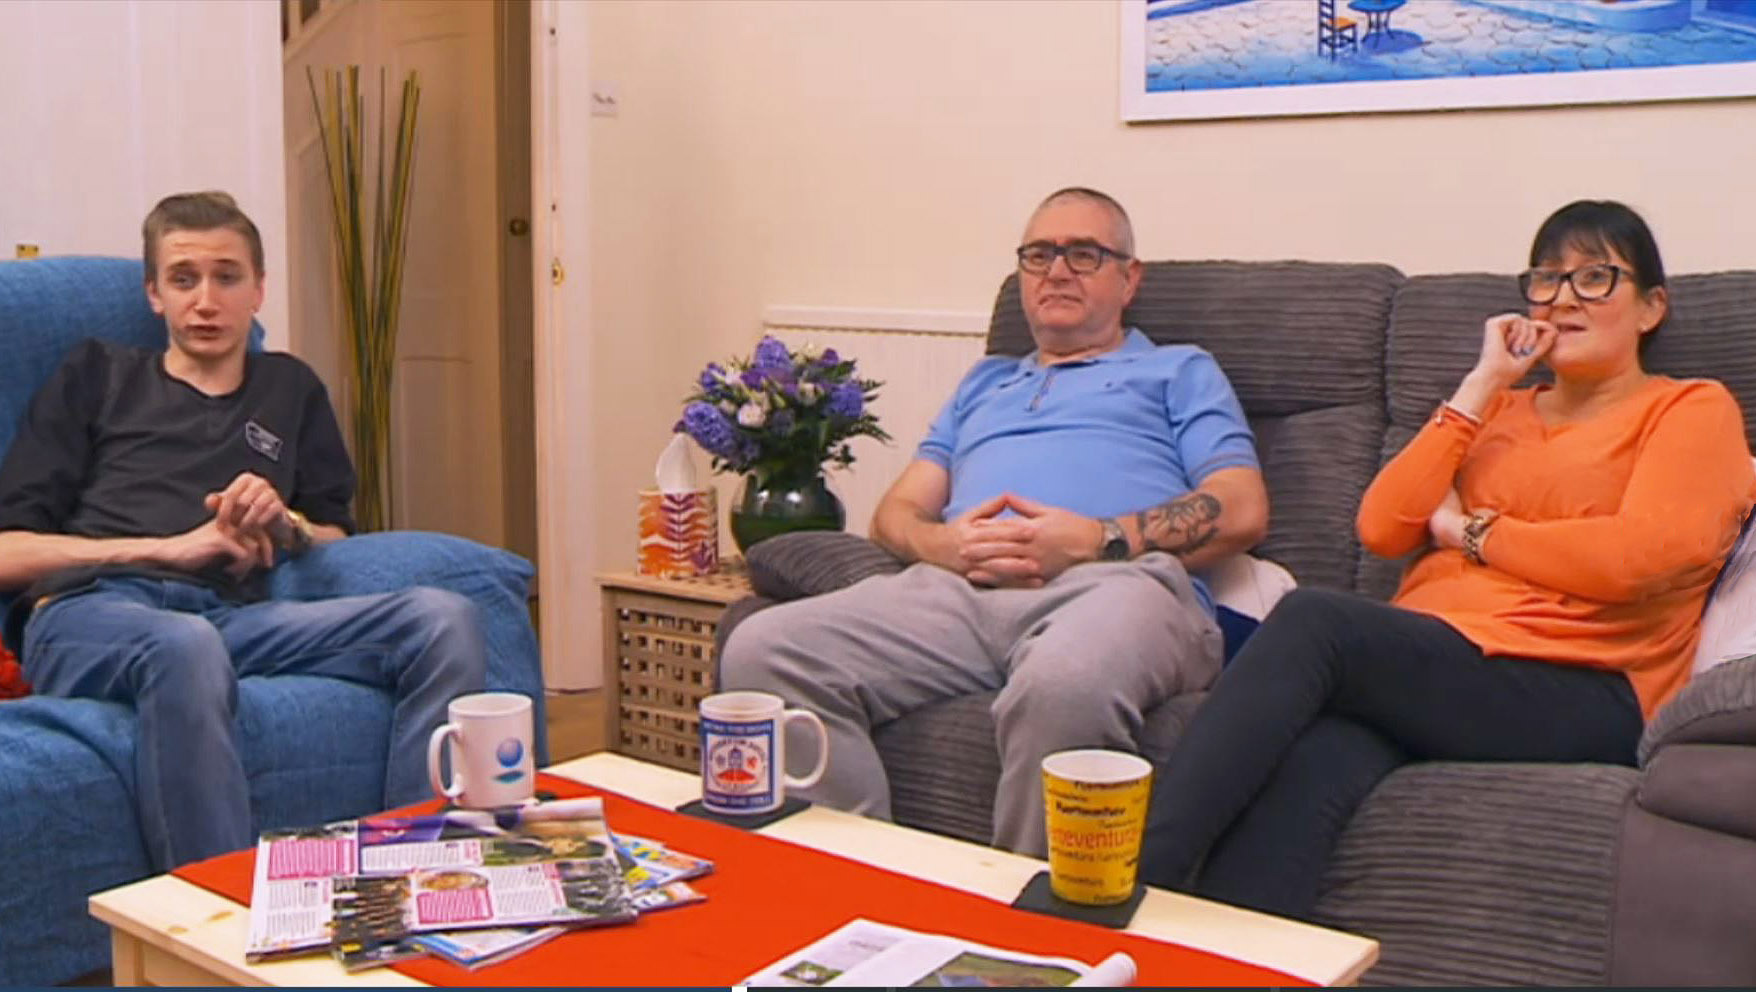 The Manuel family, who are from Glasgow but live in Croydon are a new family on Gogglebox